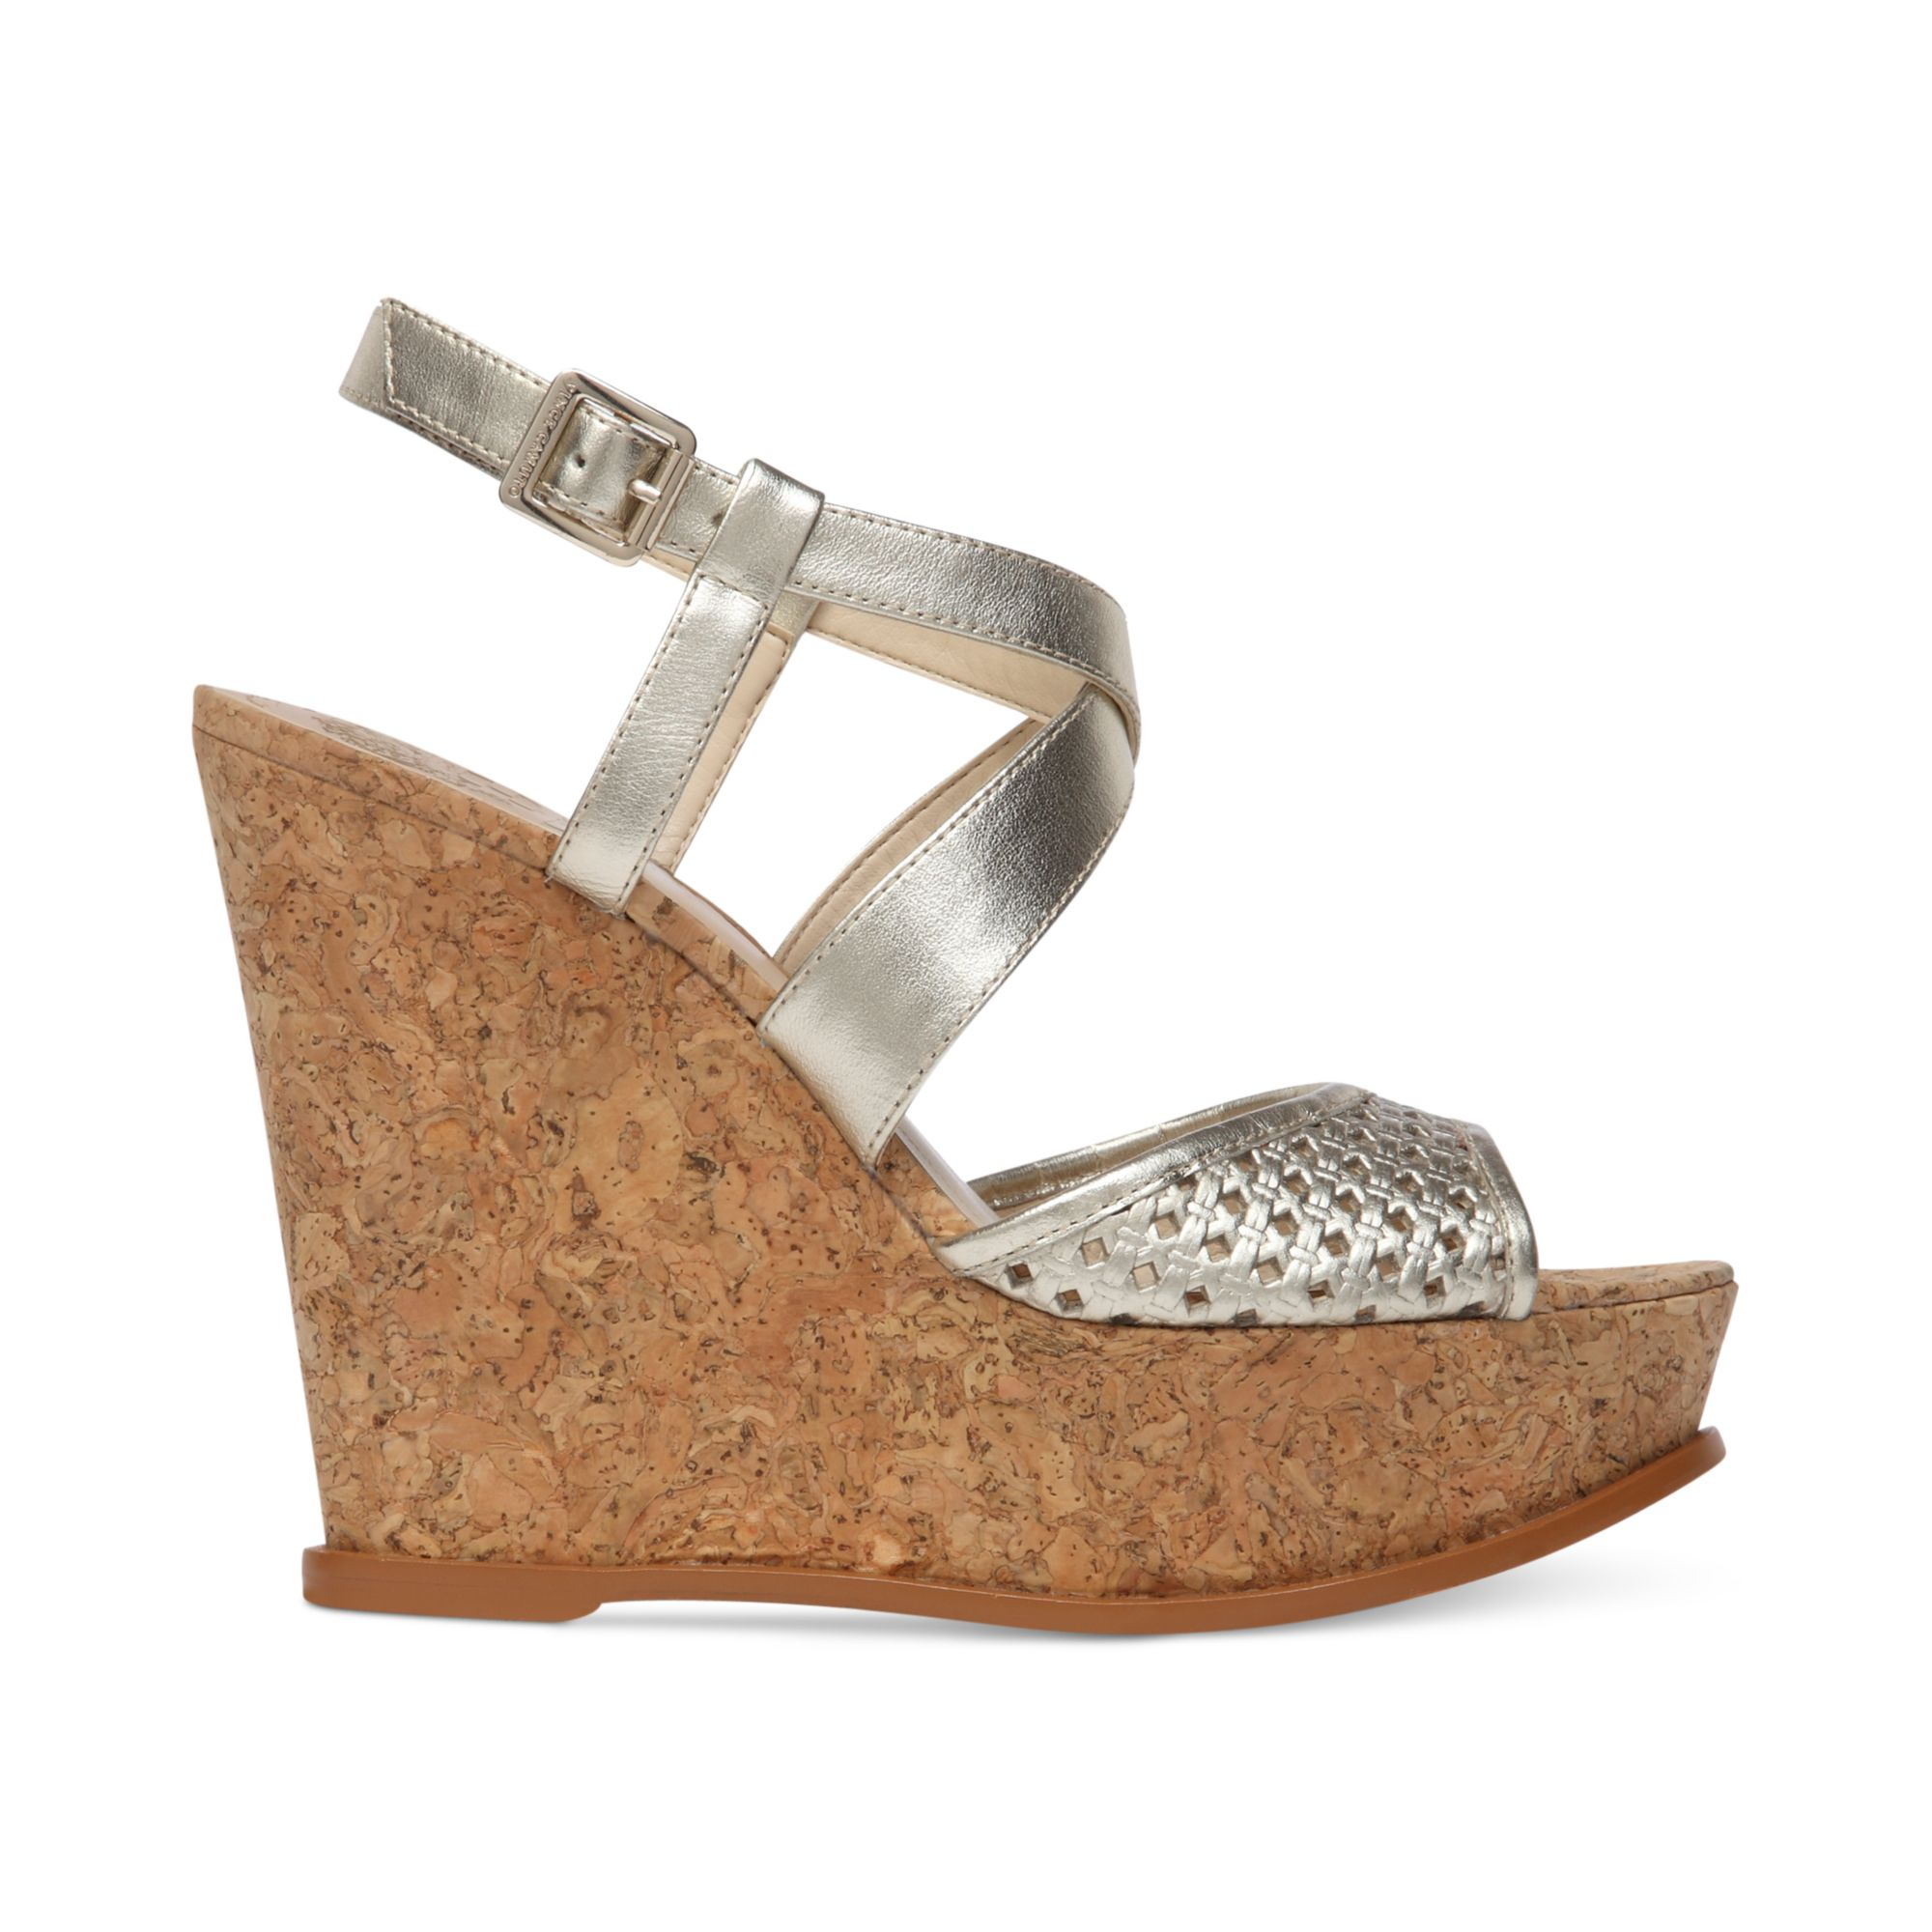 Vince Camuto Ilario Platform Wedge Sandals In Gold Light